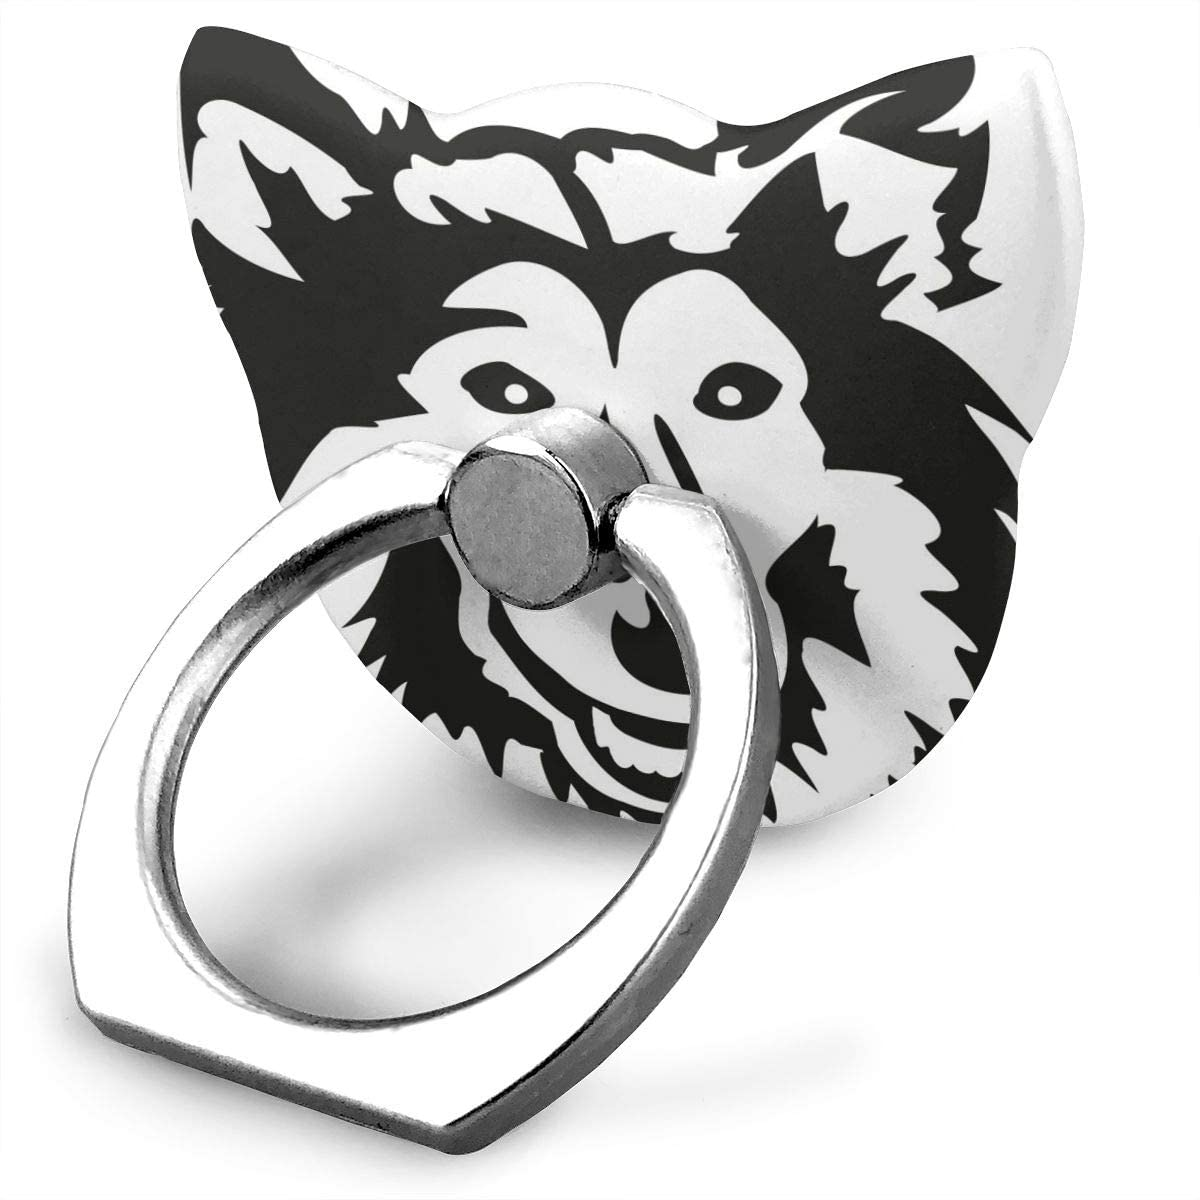 Universal Phone Ring Holder Rough Collie Head Dog Adjustable 360°Rotation Cat Shape Finger Grip Loop Cell Phone Stand for Phone X/6/6s/7/8/8/10/11 Plus Android Smartphone